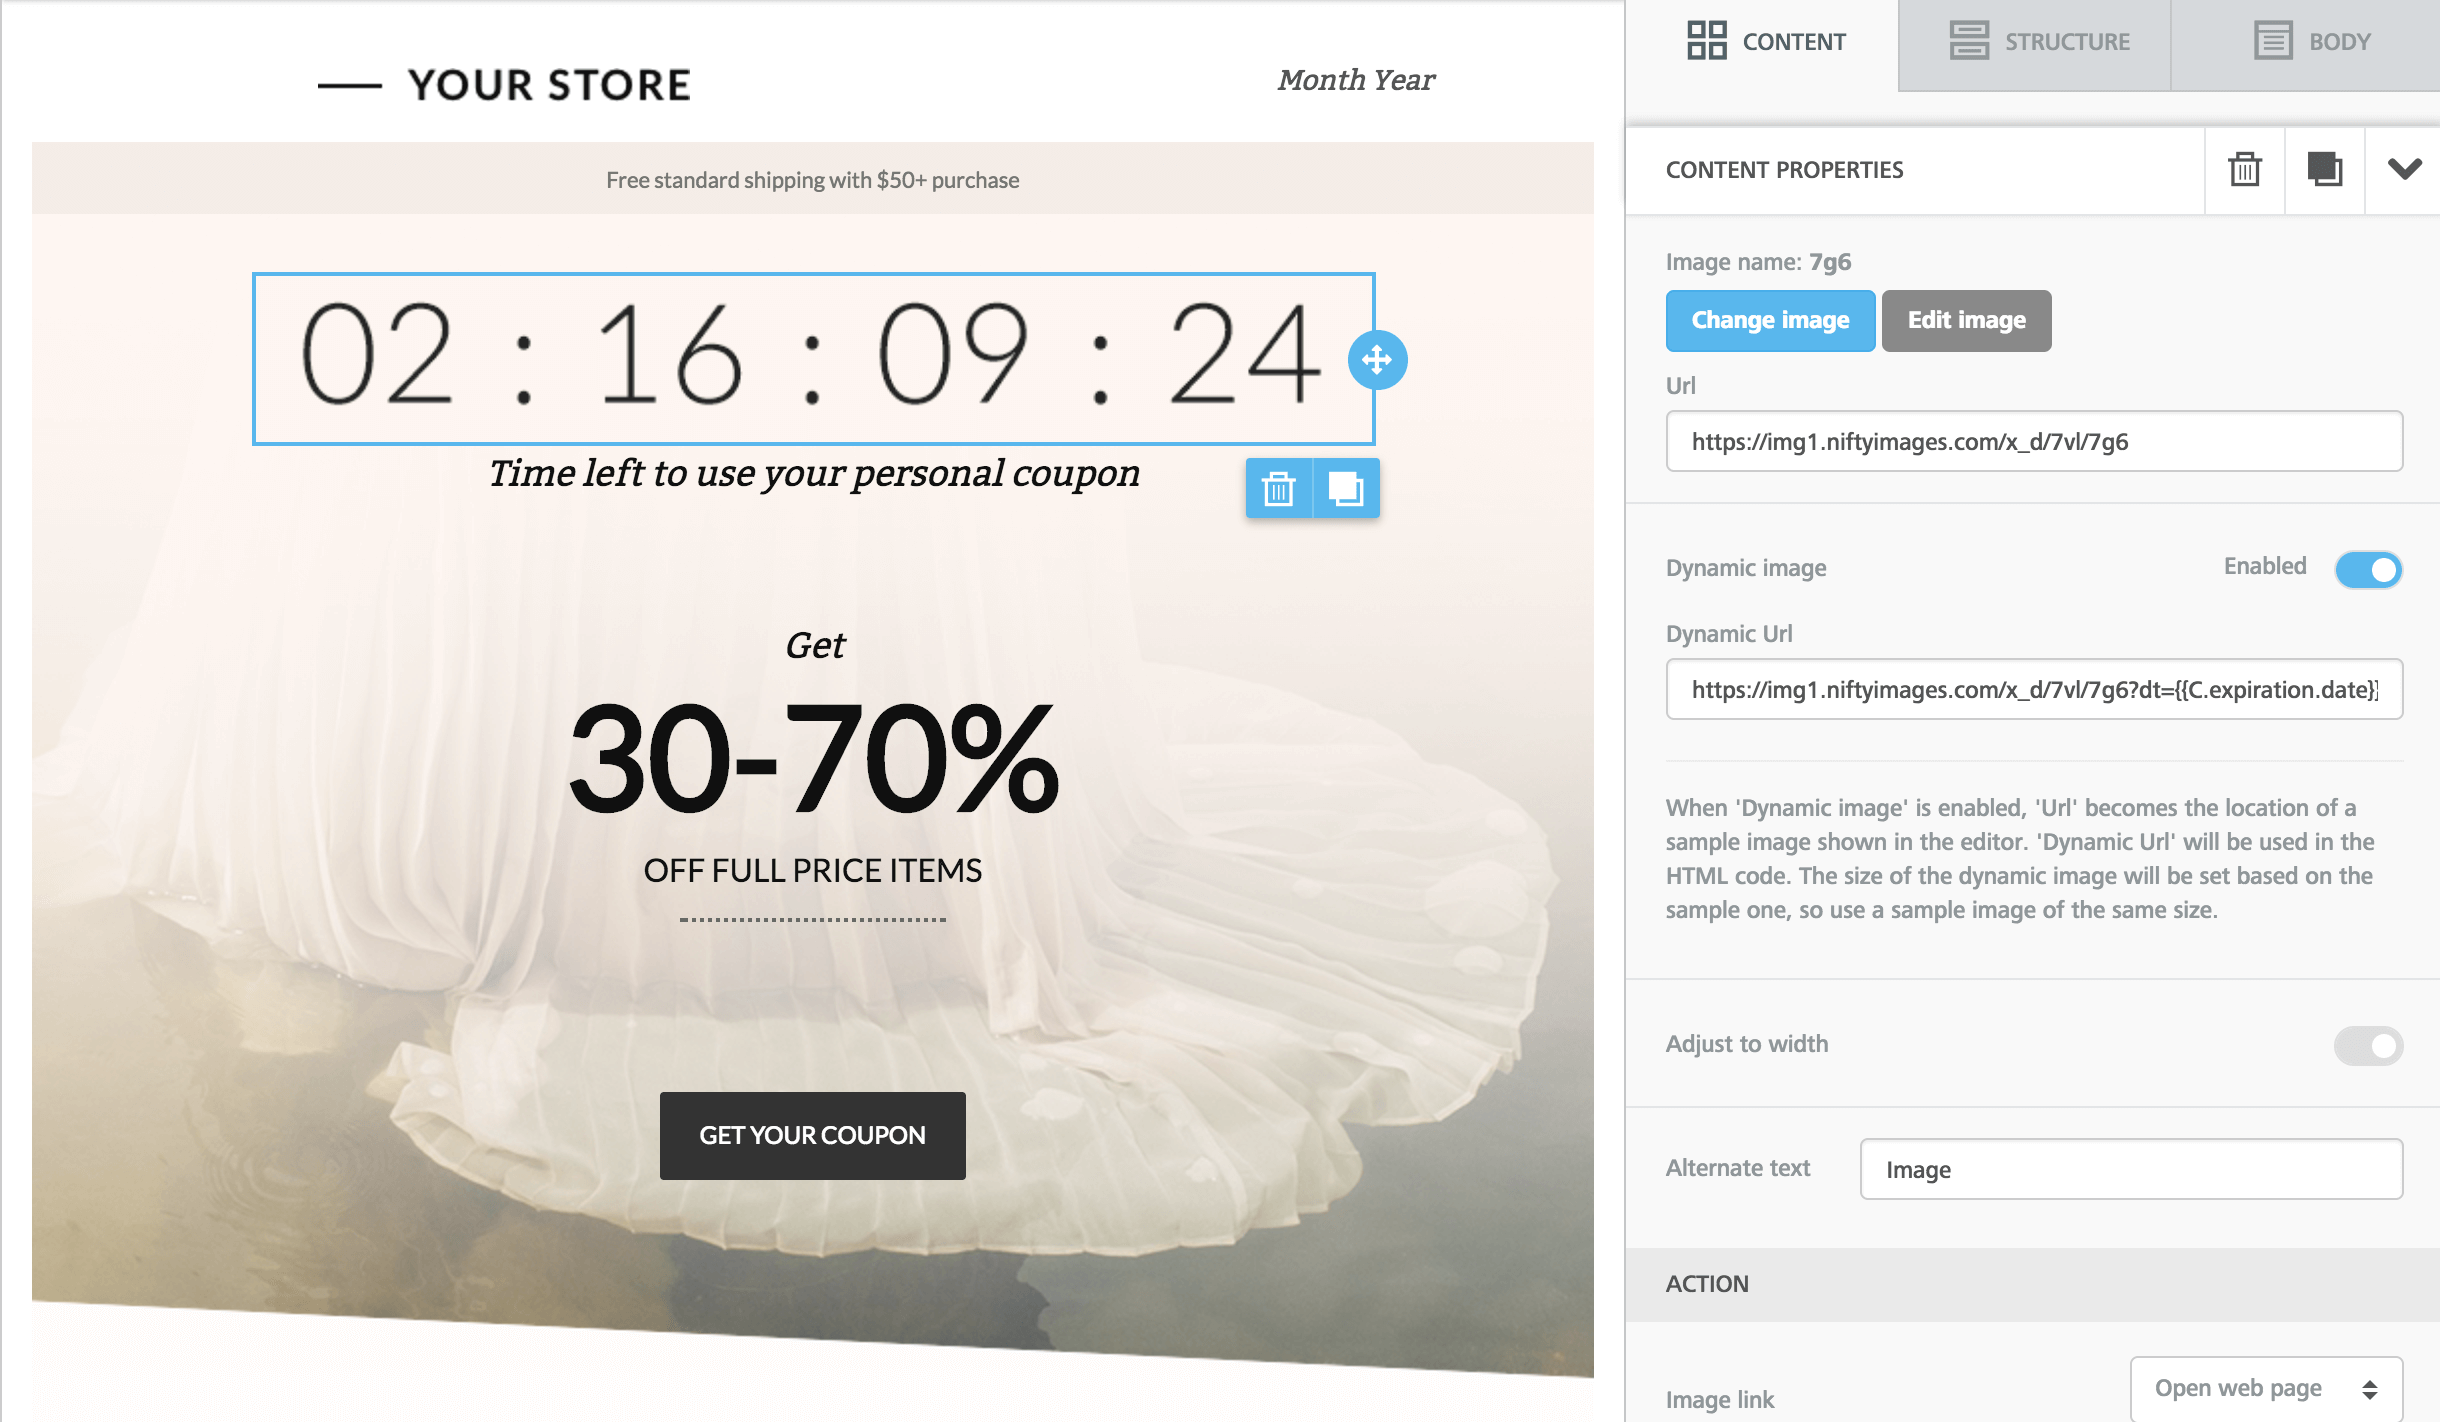 Using dynamic images for countdown timers and personalized